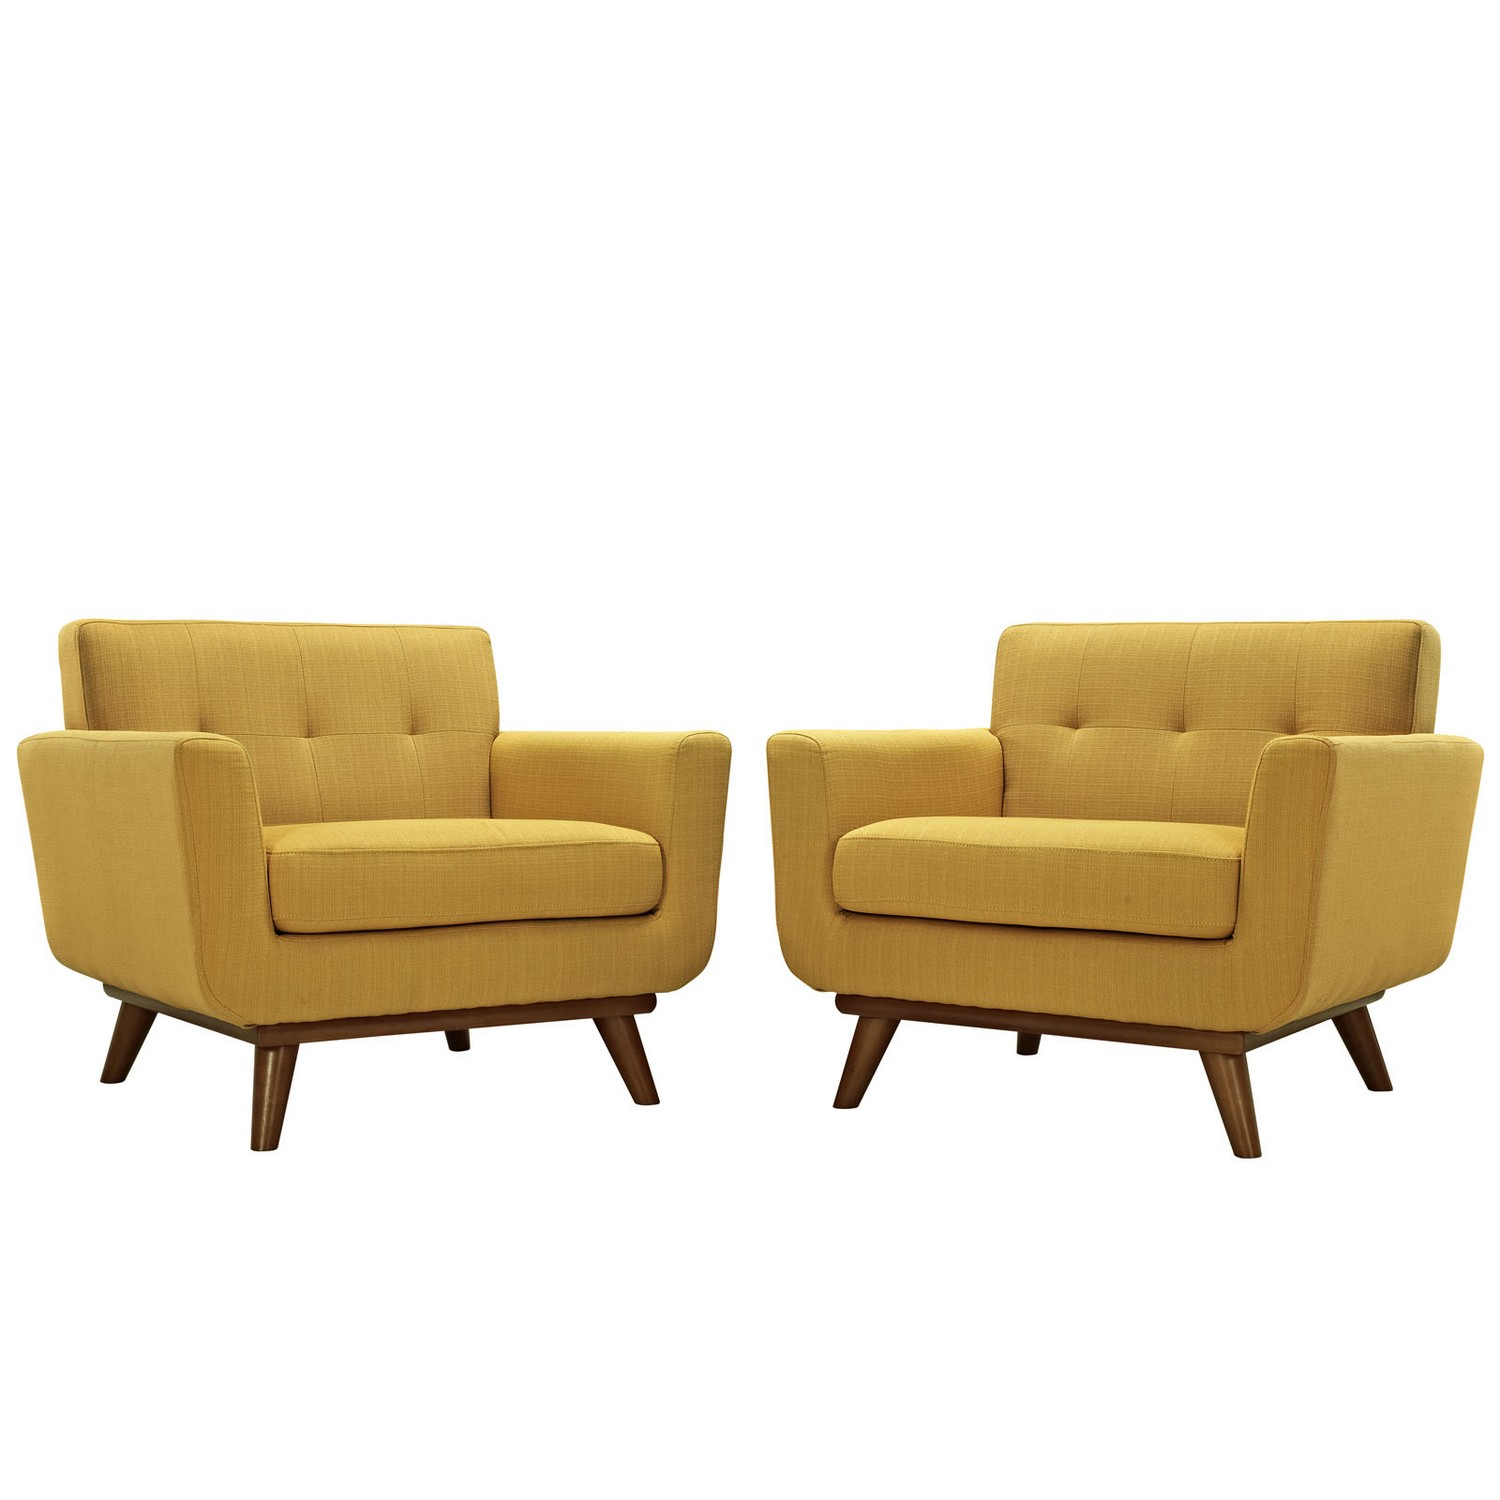 Modway Engage Armchair Wood Set of 2 - Citrus